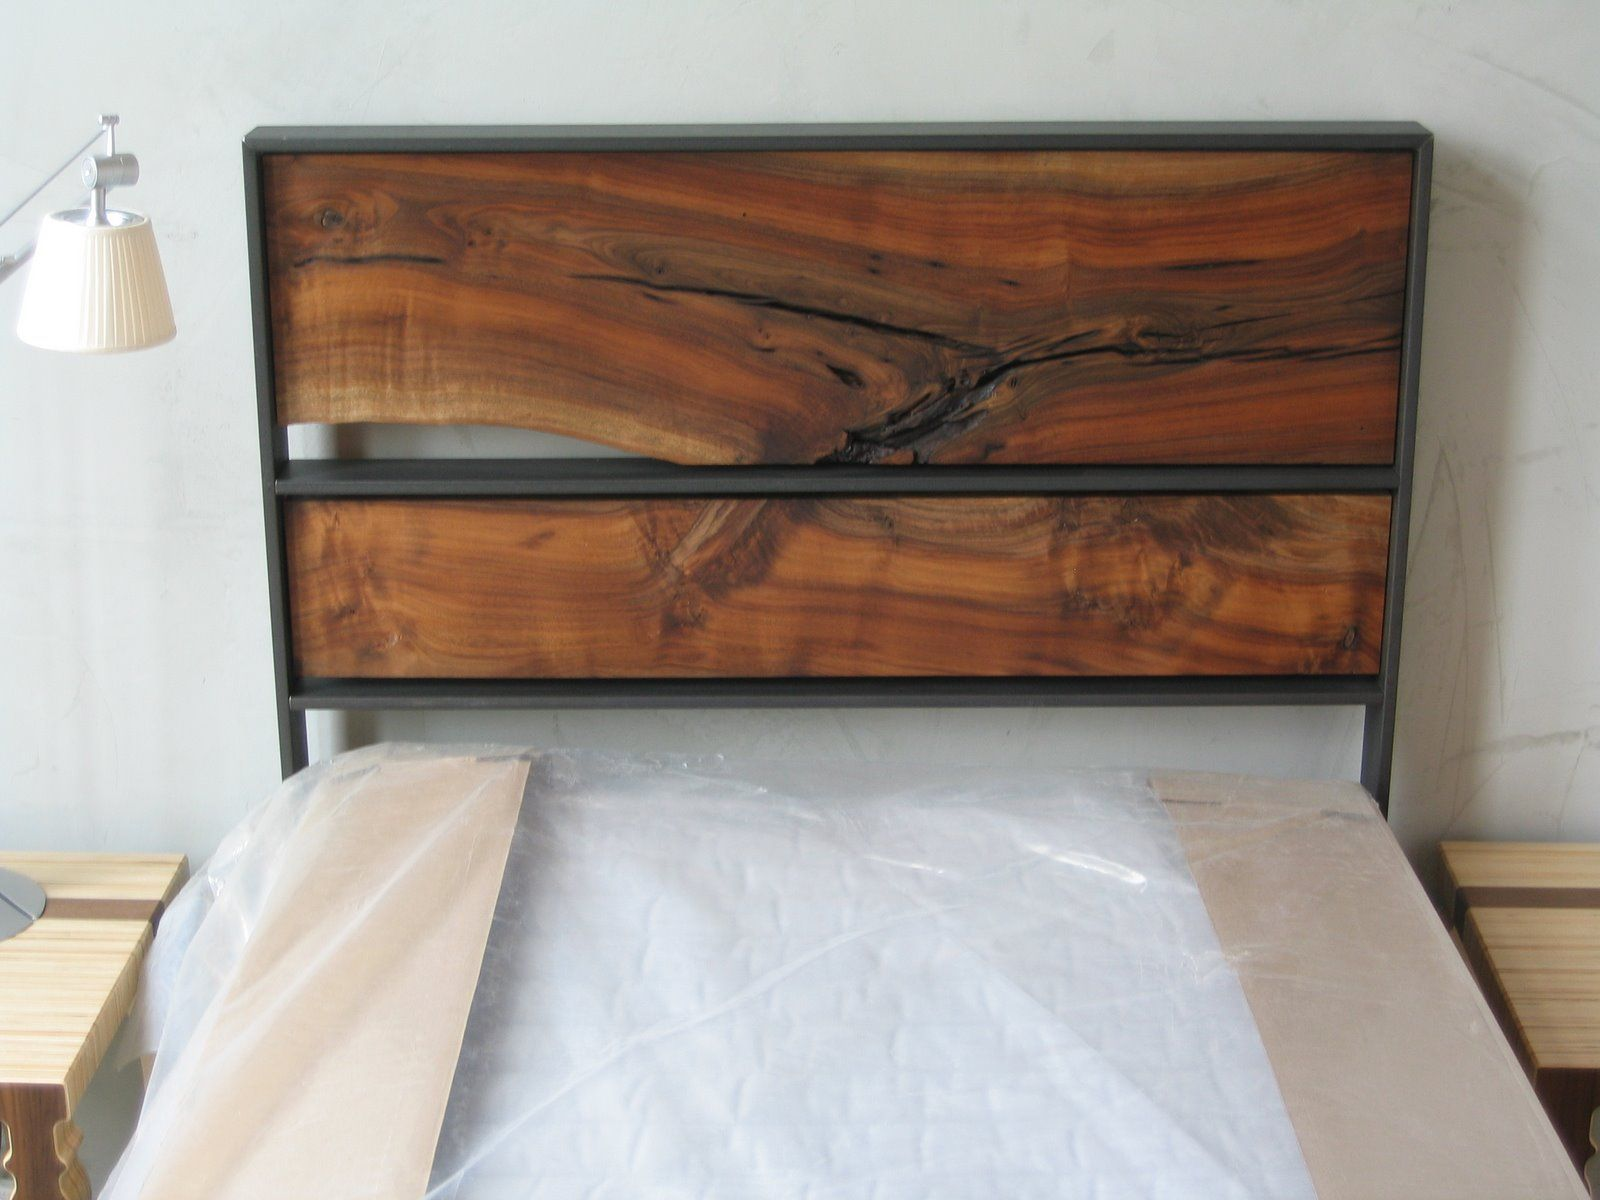 Liveedge Headboard 1 2 Wood Furniture Diy Live Edge Furniture Raw Wood Furniture